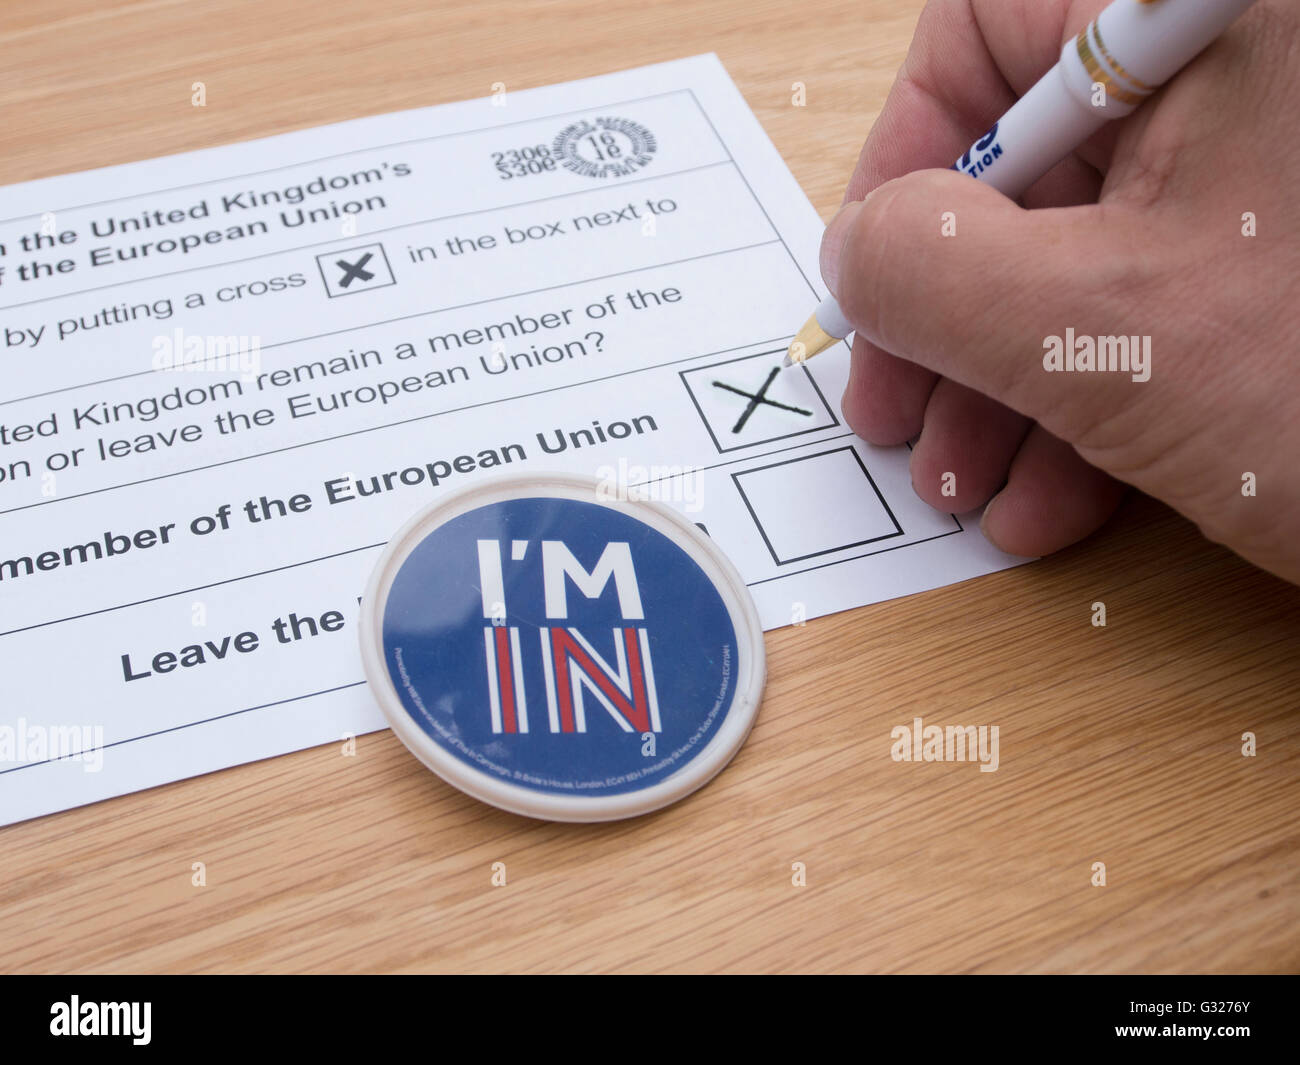 Exeter UK 7 June 2016 EU referendum voting by postal ballot with I'm in badge - Stock Image